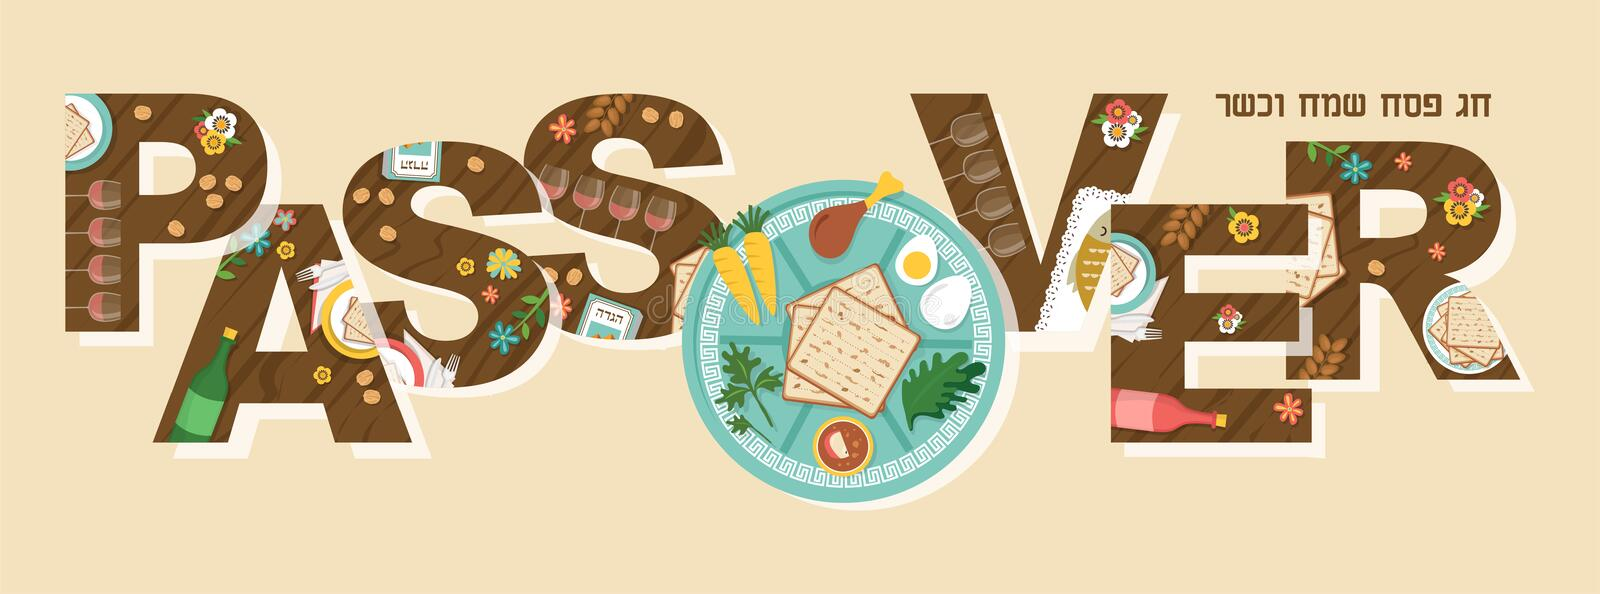 Abstract Passover in Hebrew with Seder plate in the middles- Vector. Illustration royalty free illustration